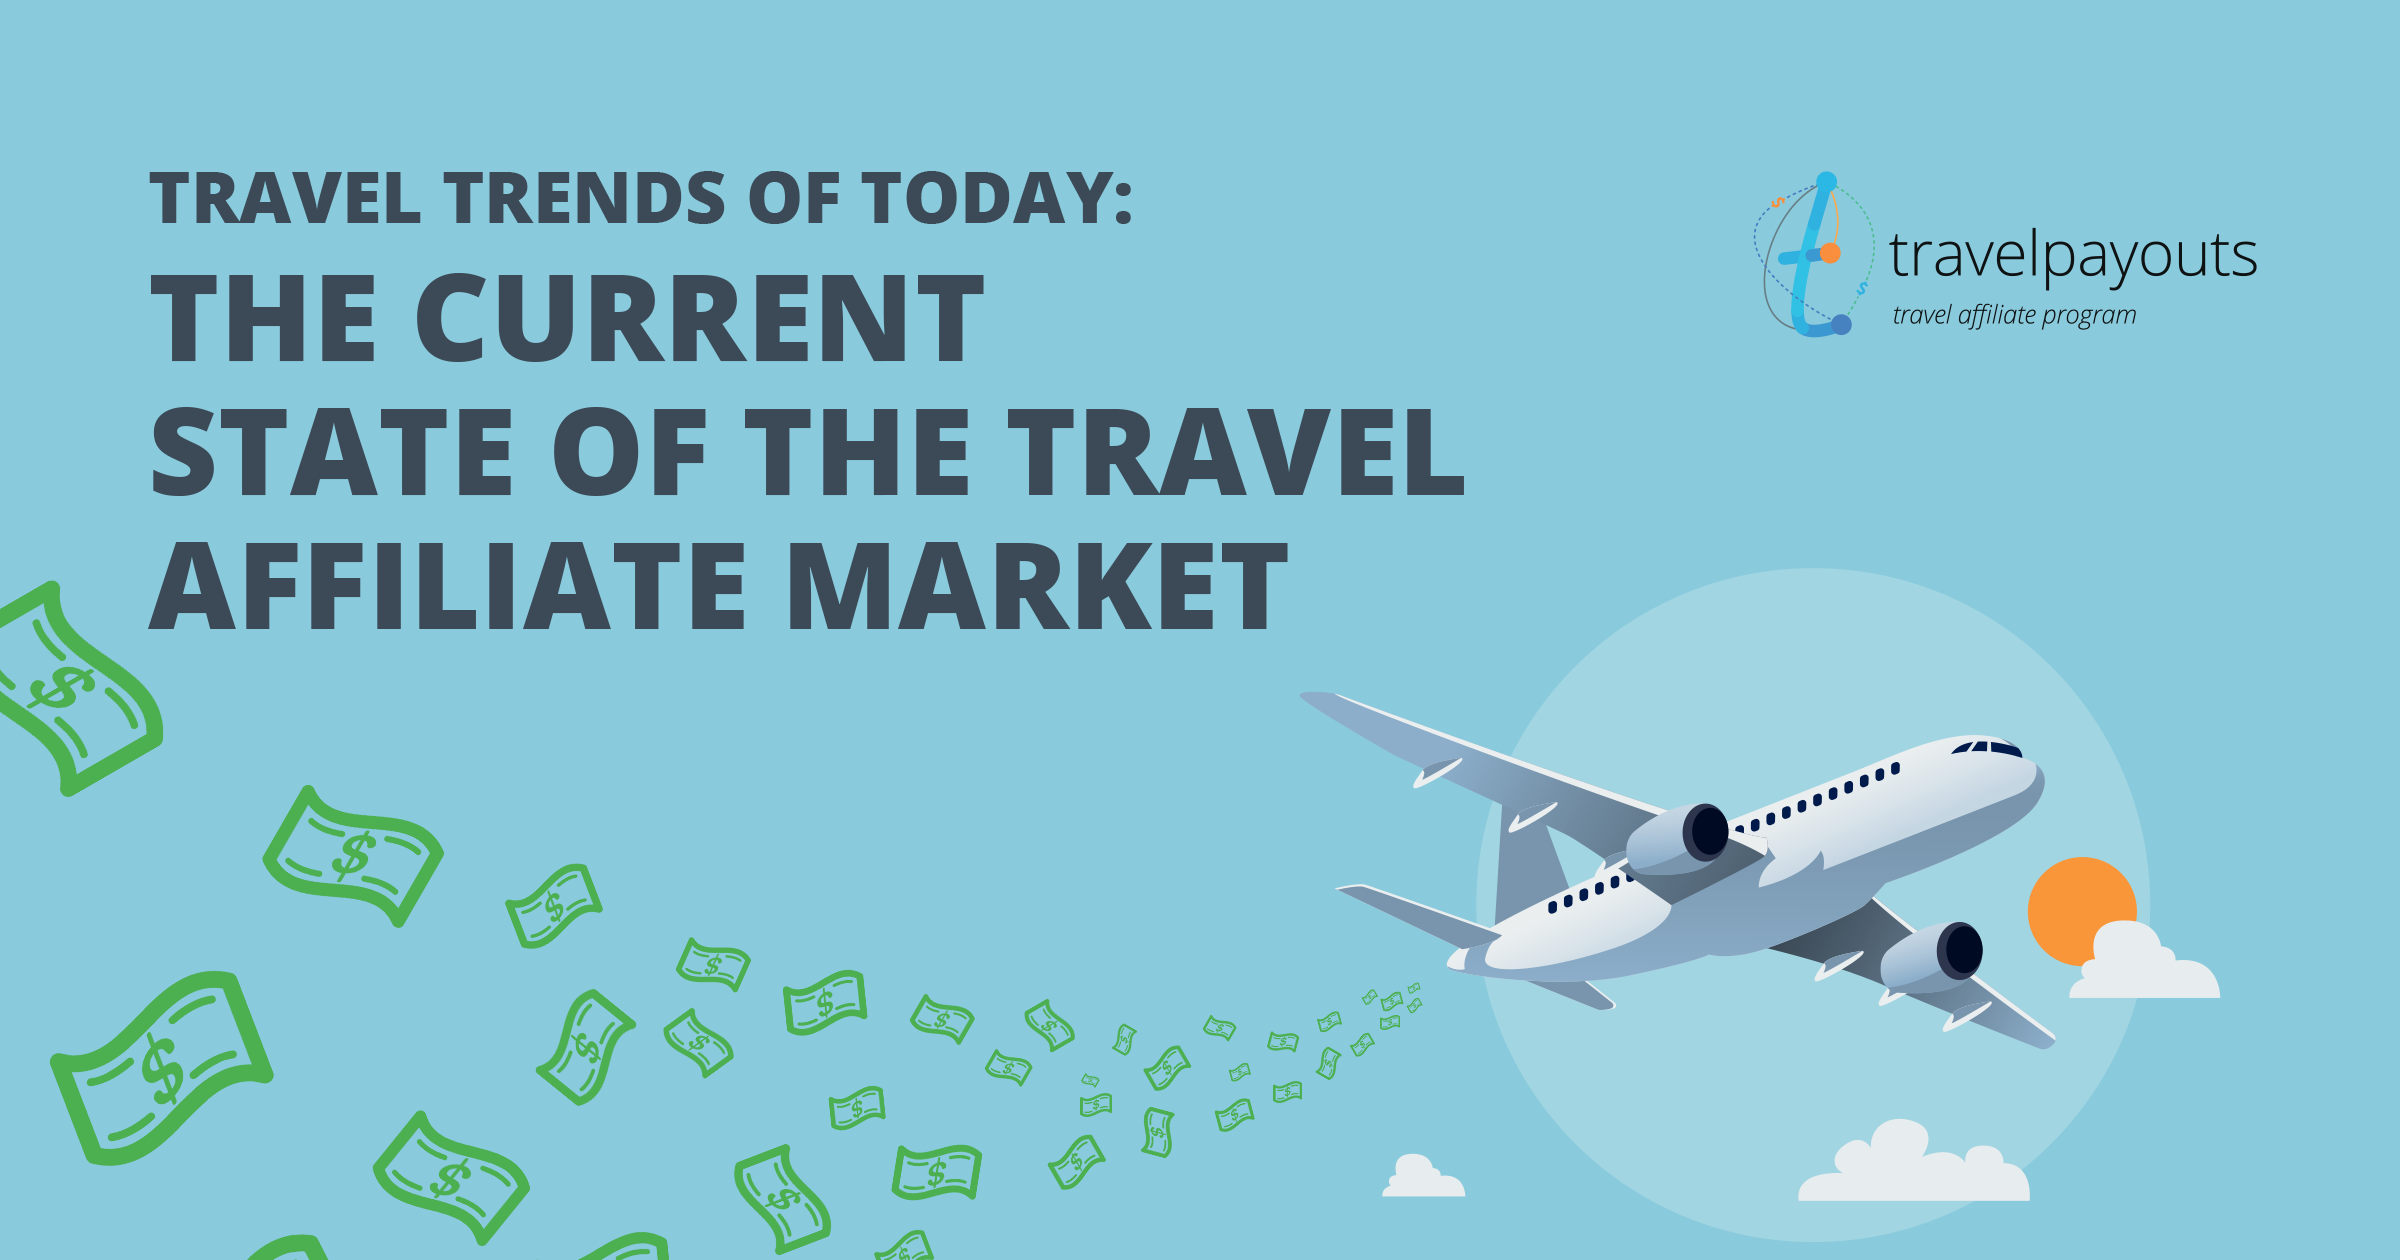 Travel affiliate market trends